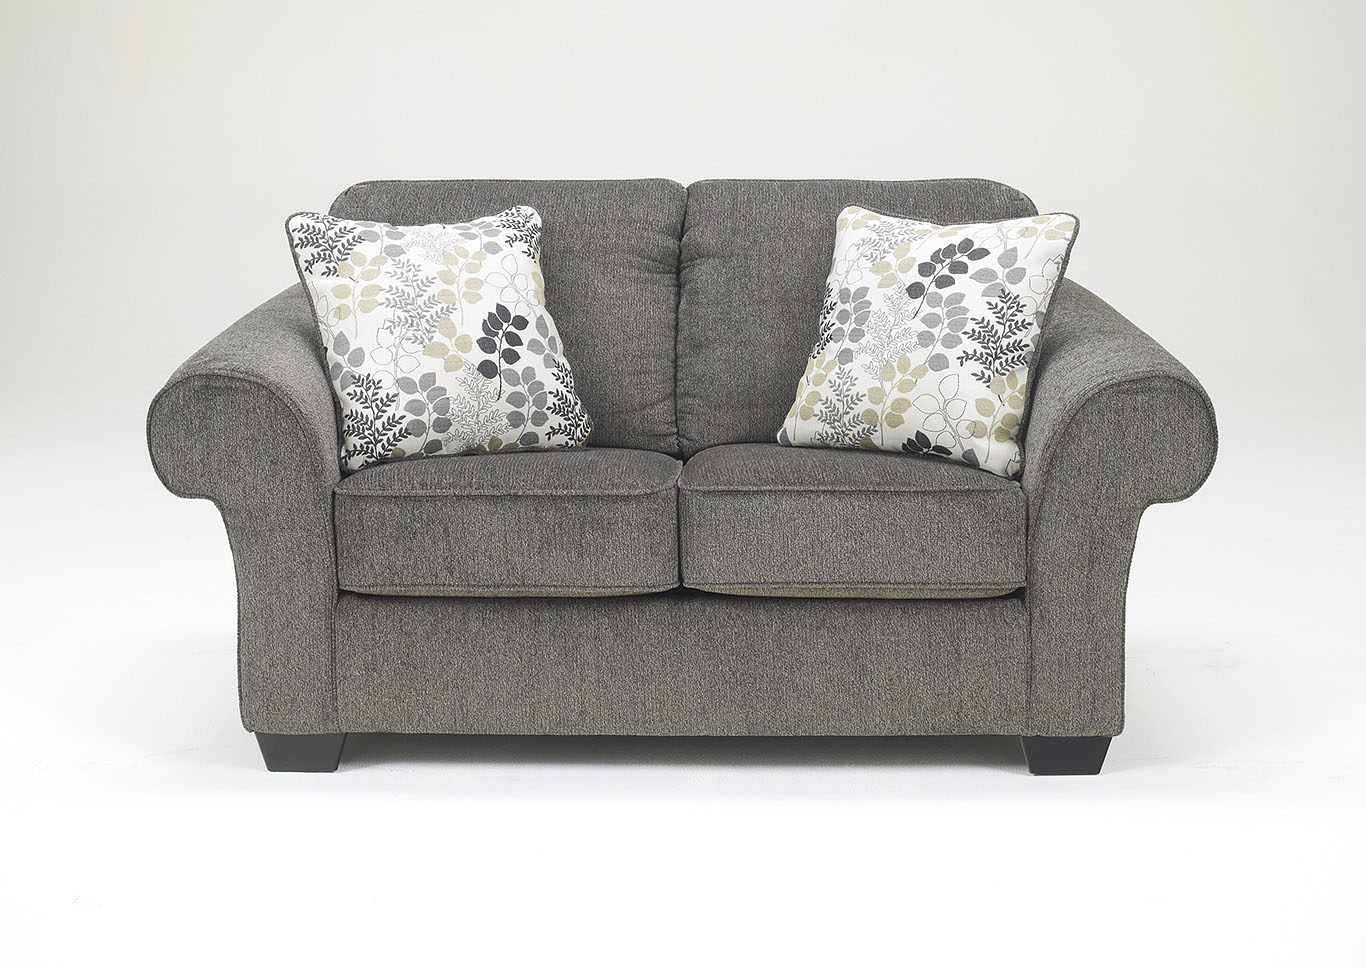 Makonnen Charcoal Loveseat,Signature Design By Ashley